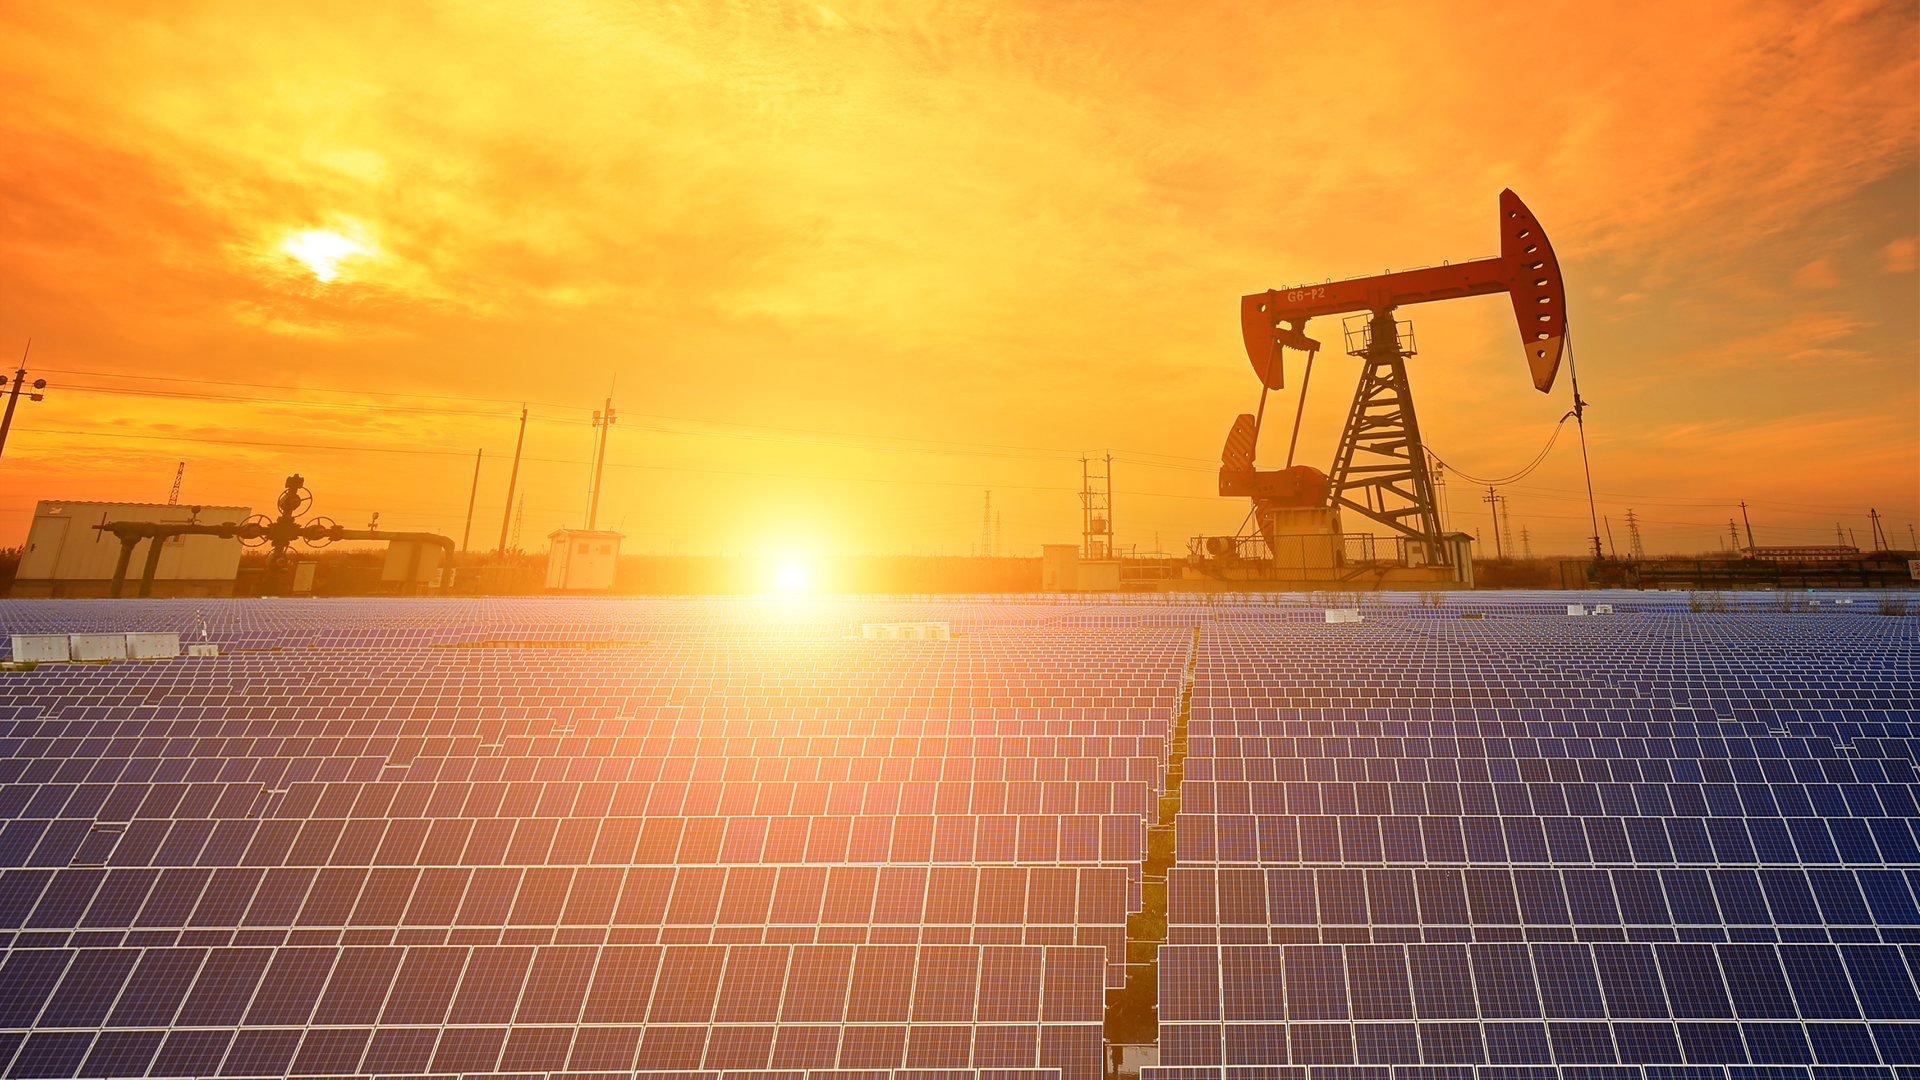 Solar panels near oil field overlooking a sunset